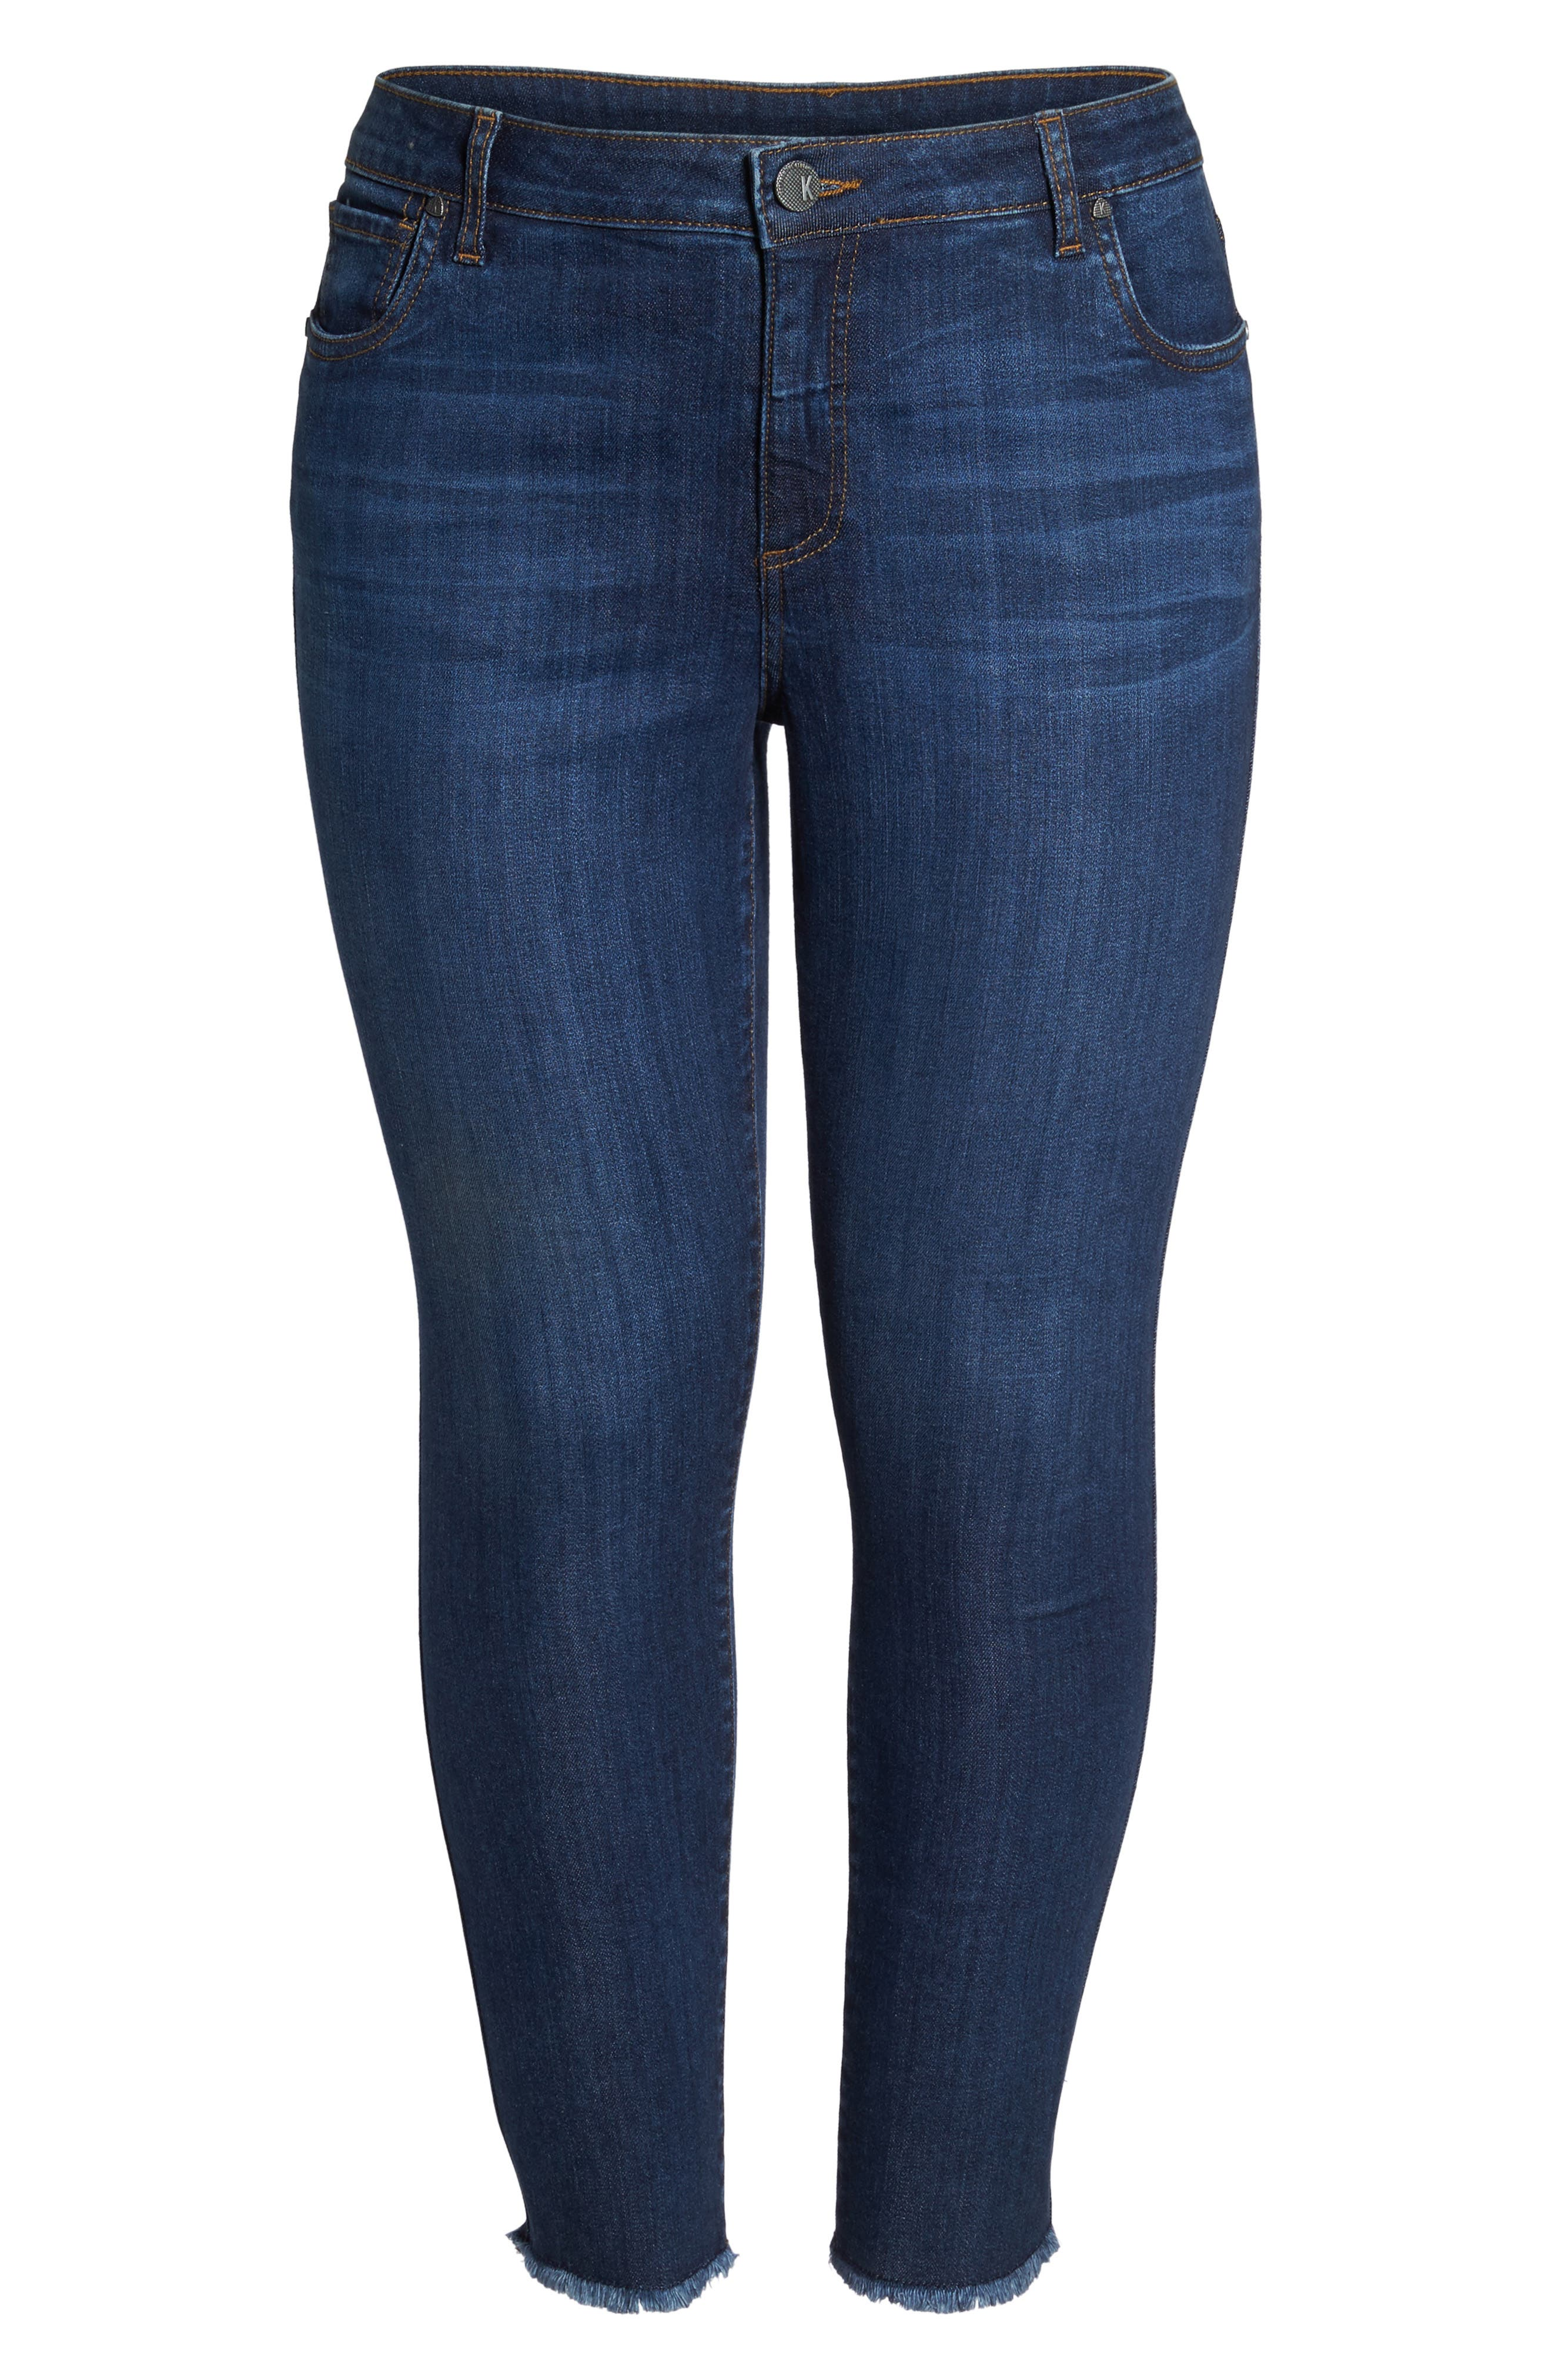 Reese Frayed Ankle Jeans,                             Alternate thumbnail 7, color,